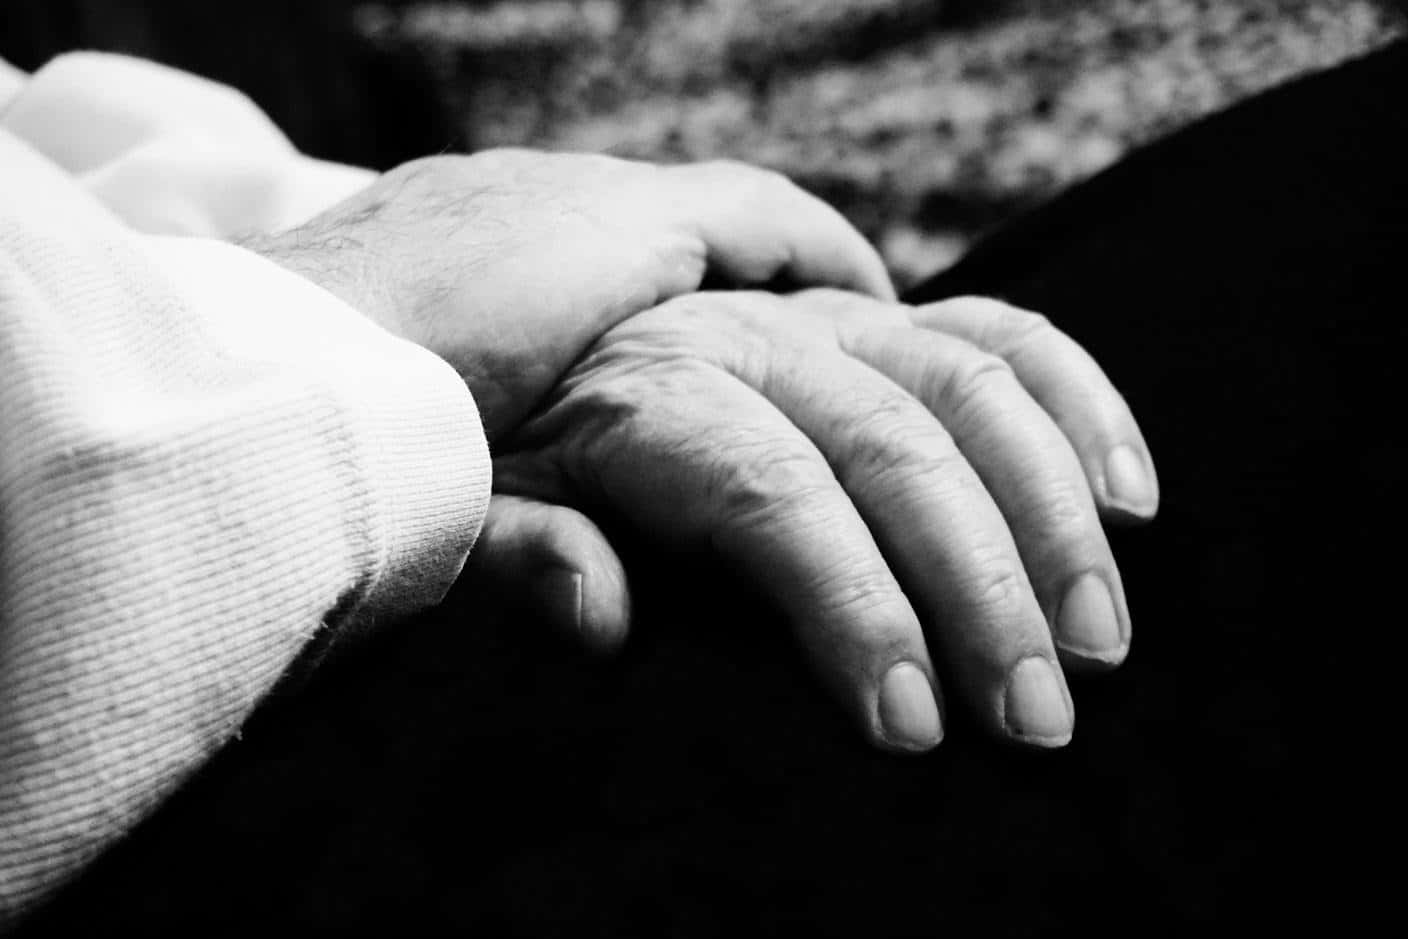 a monochrome picture of hands